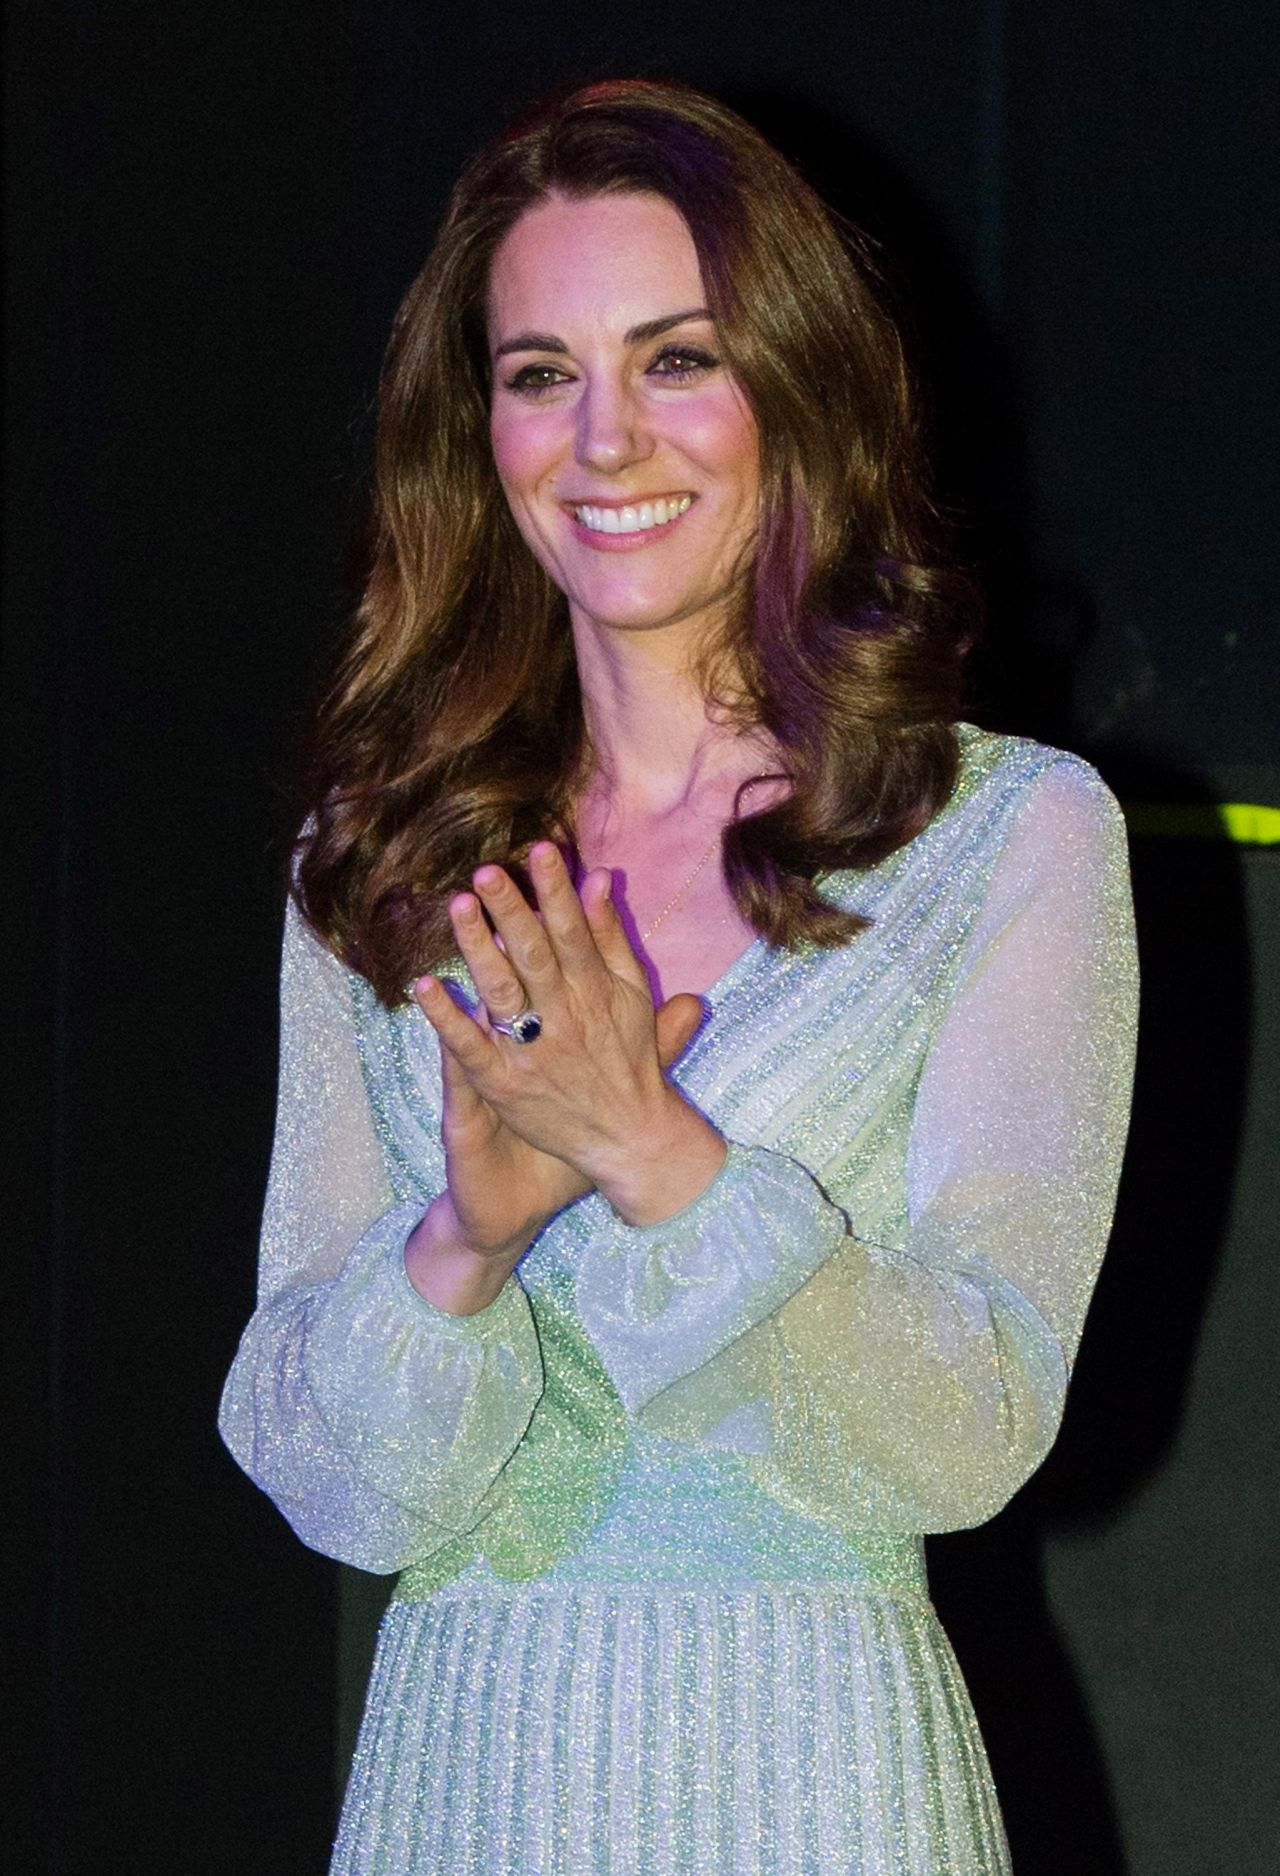 Kate Middleton Visits The Empire Music Hall In Belfast